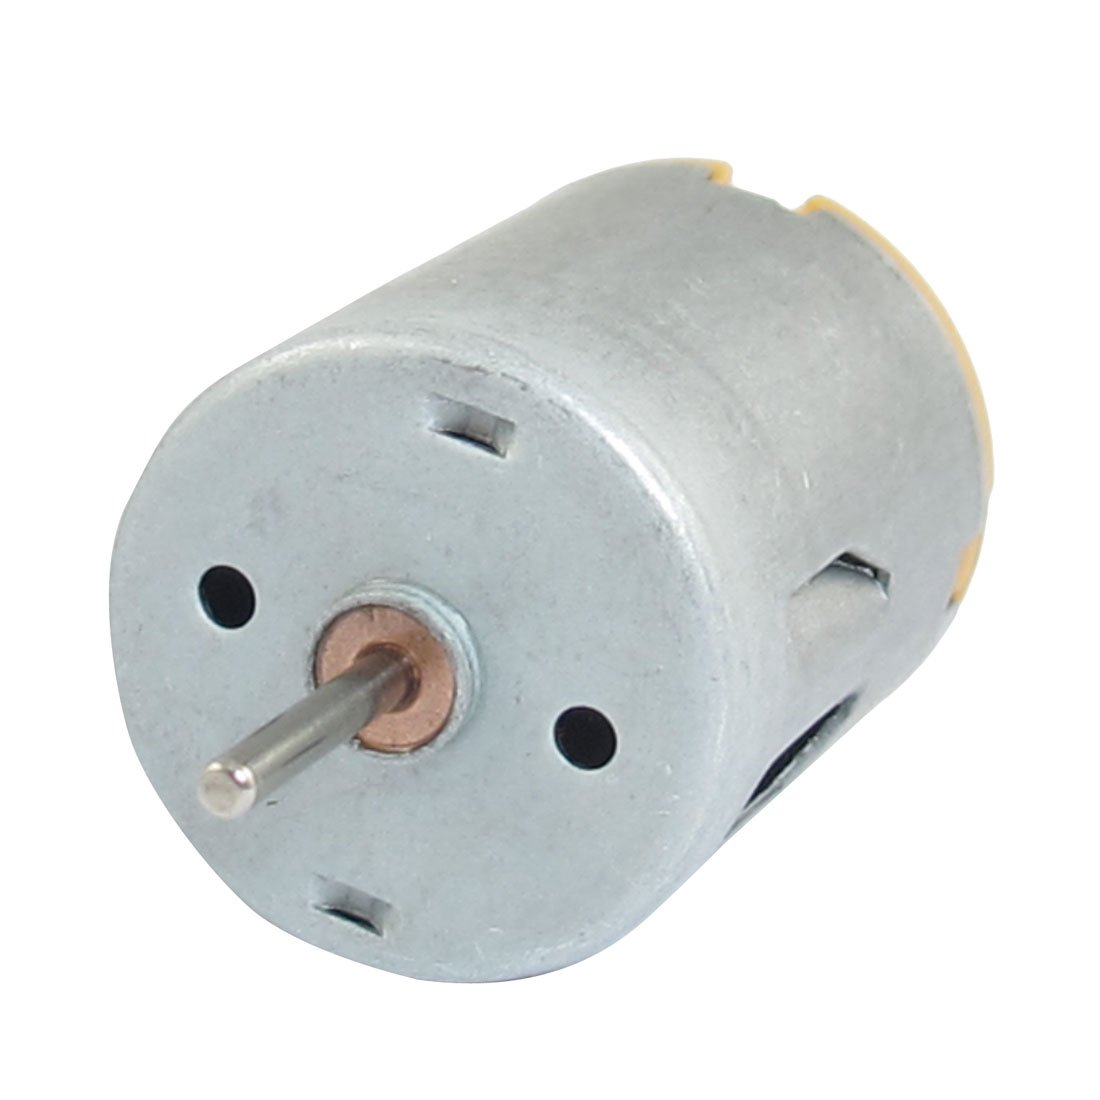 uxcell a12122600ux0382 8000RPM 9V 68mA High Torque Magnetic Cylindrical Mini DC Motor